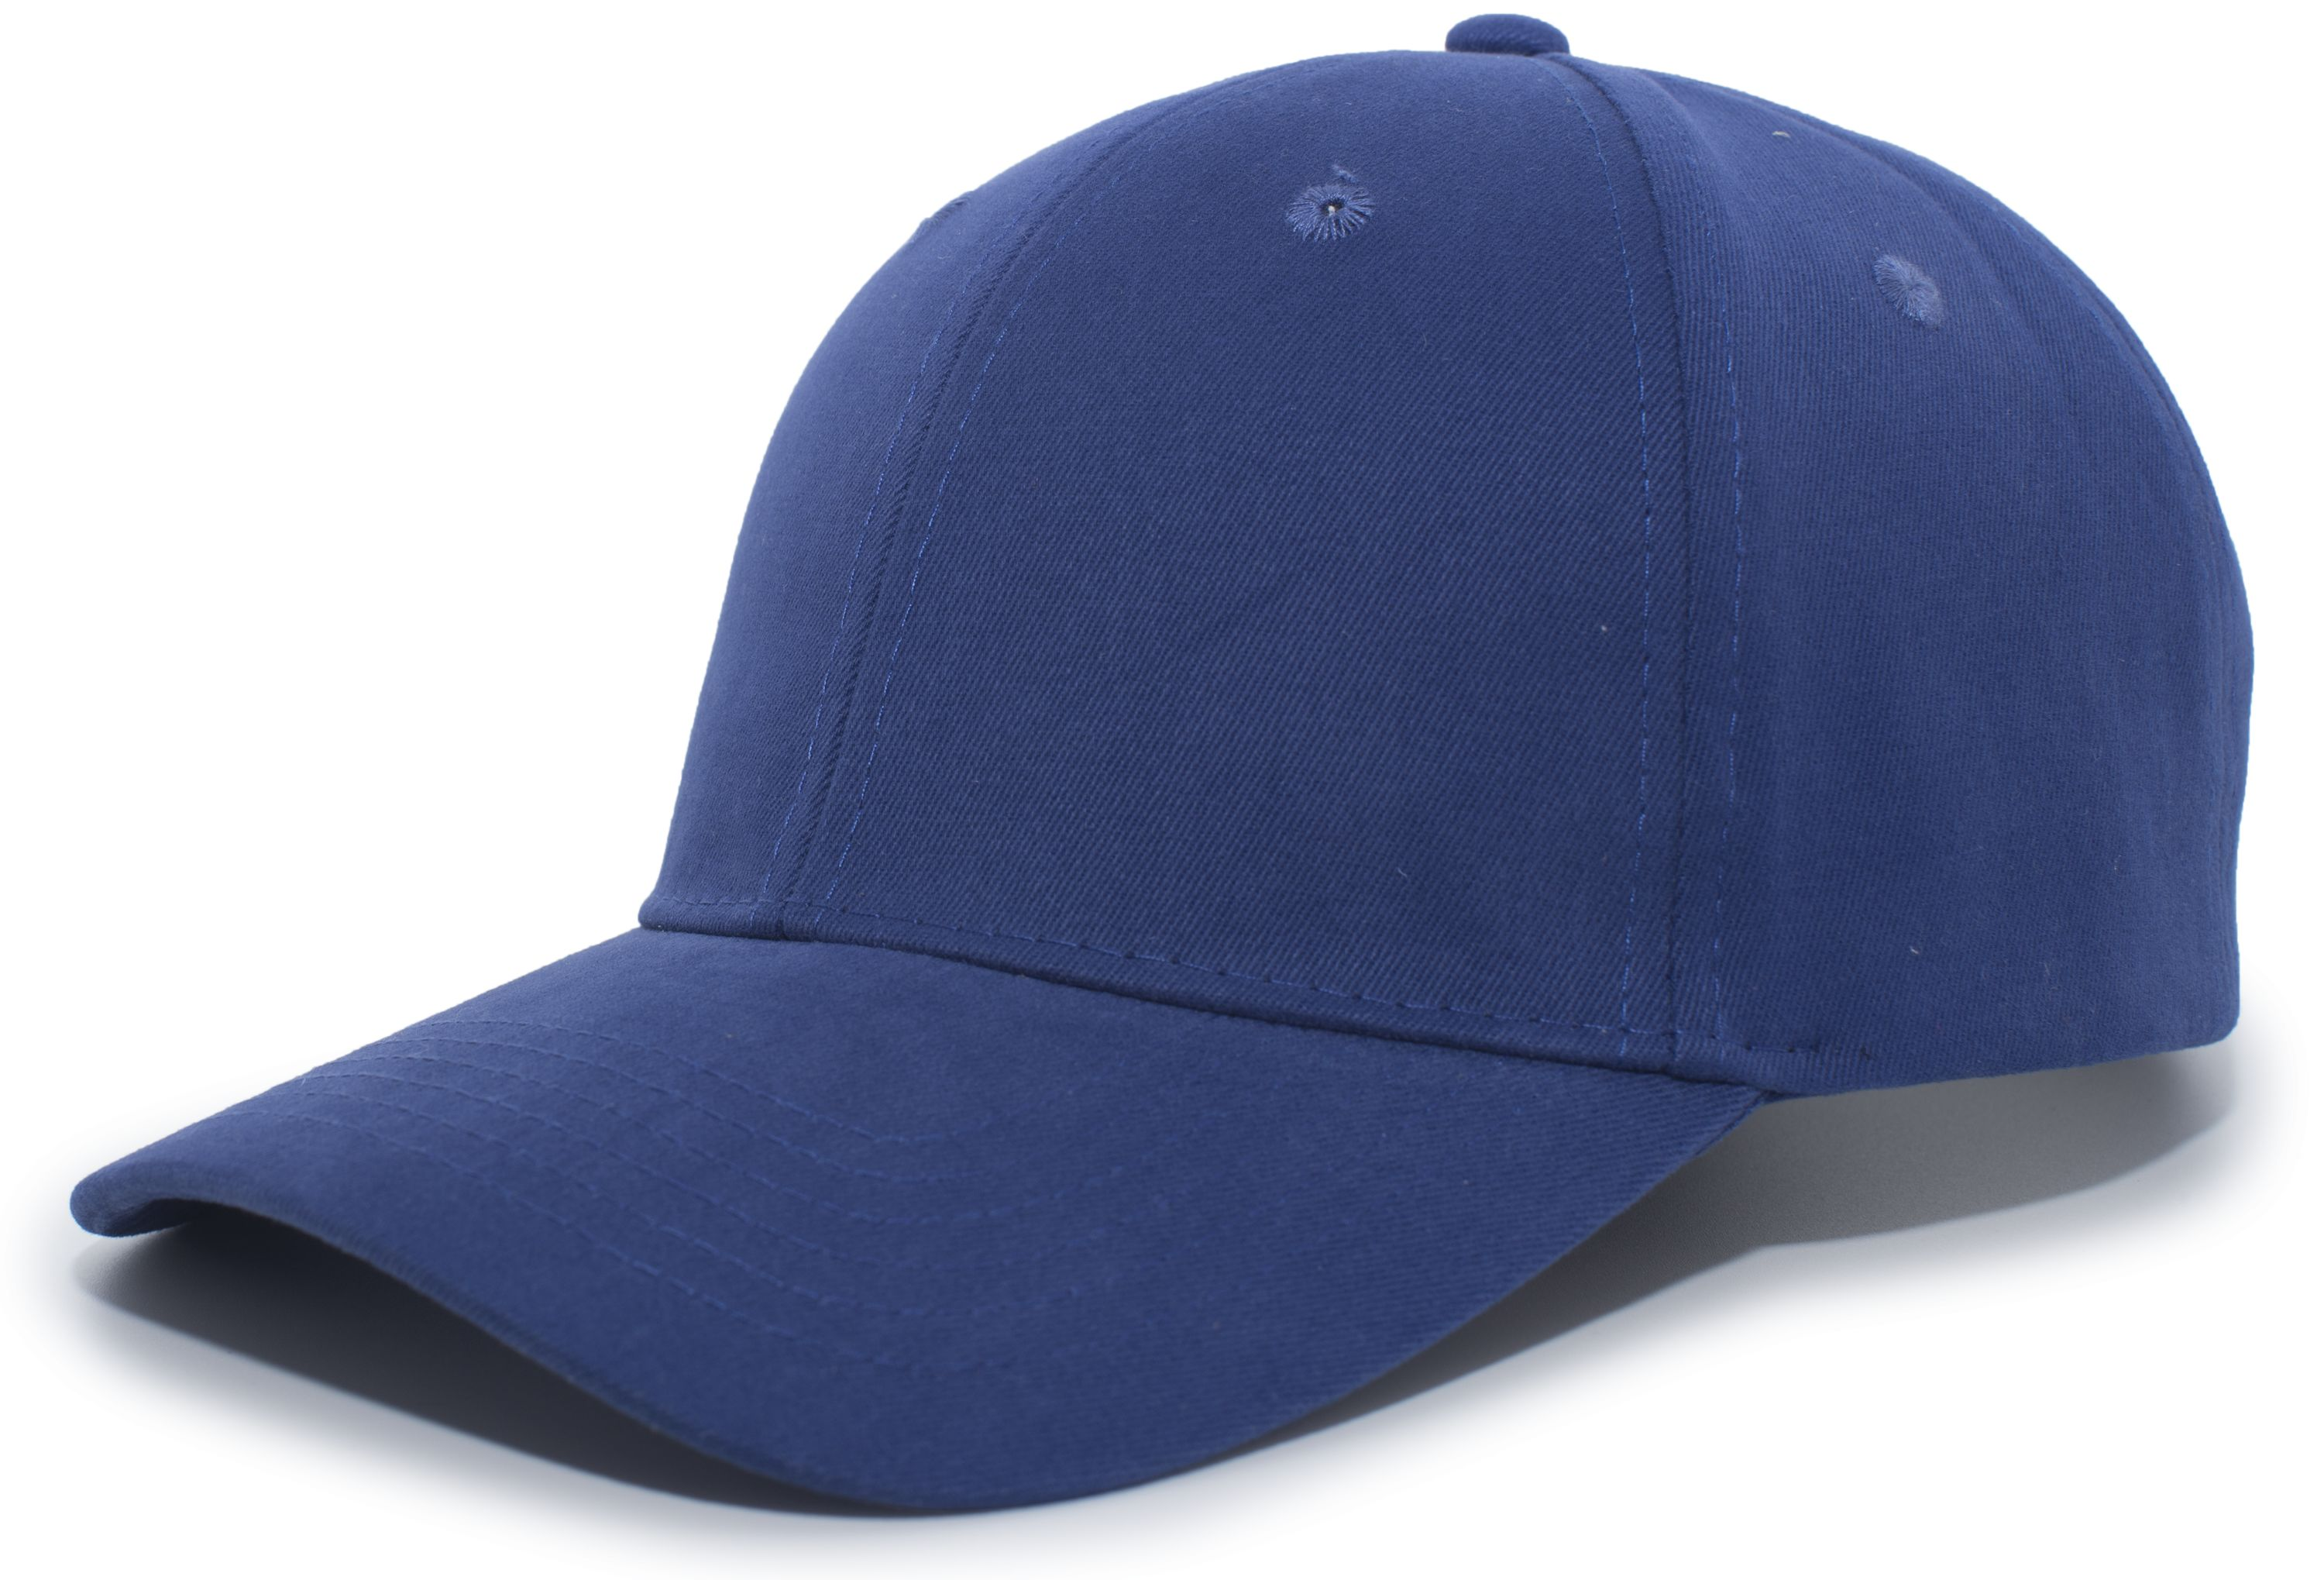 Brushed Cotton Twill Hook-And-Loop Adjustable Cap - ROYAL